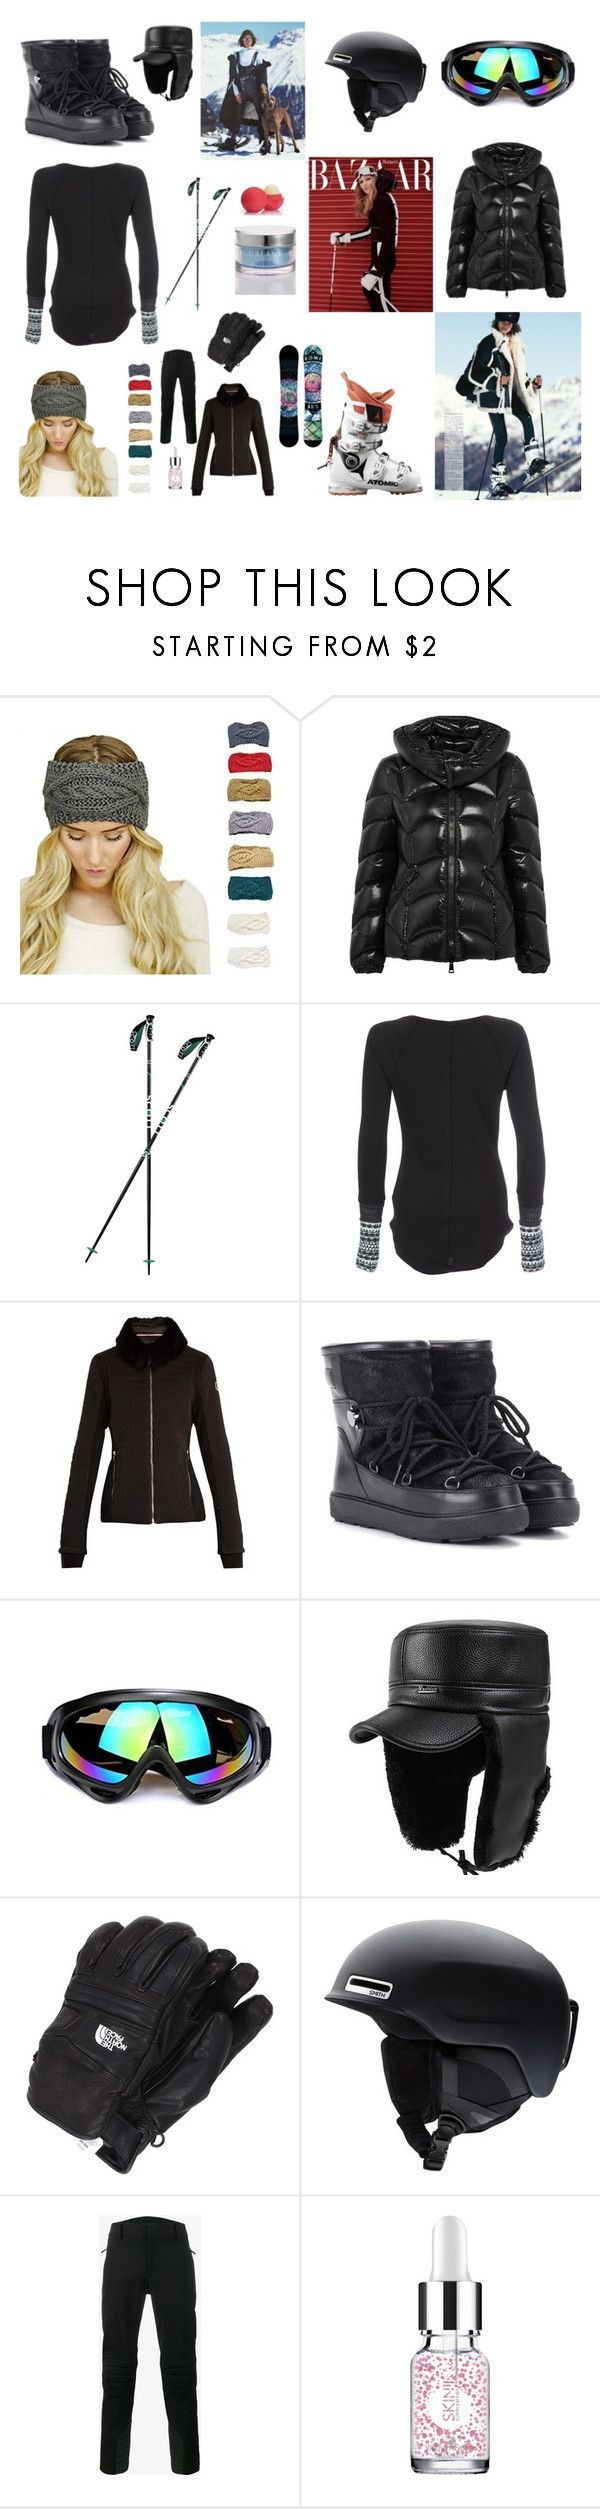 SKI MOOD by nadinezvous on Polyvore featuring mode, Free People, Moncler, Fusalp, Moncler Grenoble, Smith, The North Face, Orlane and Skin Inc